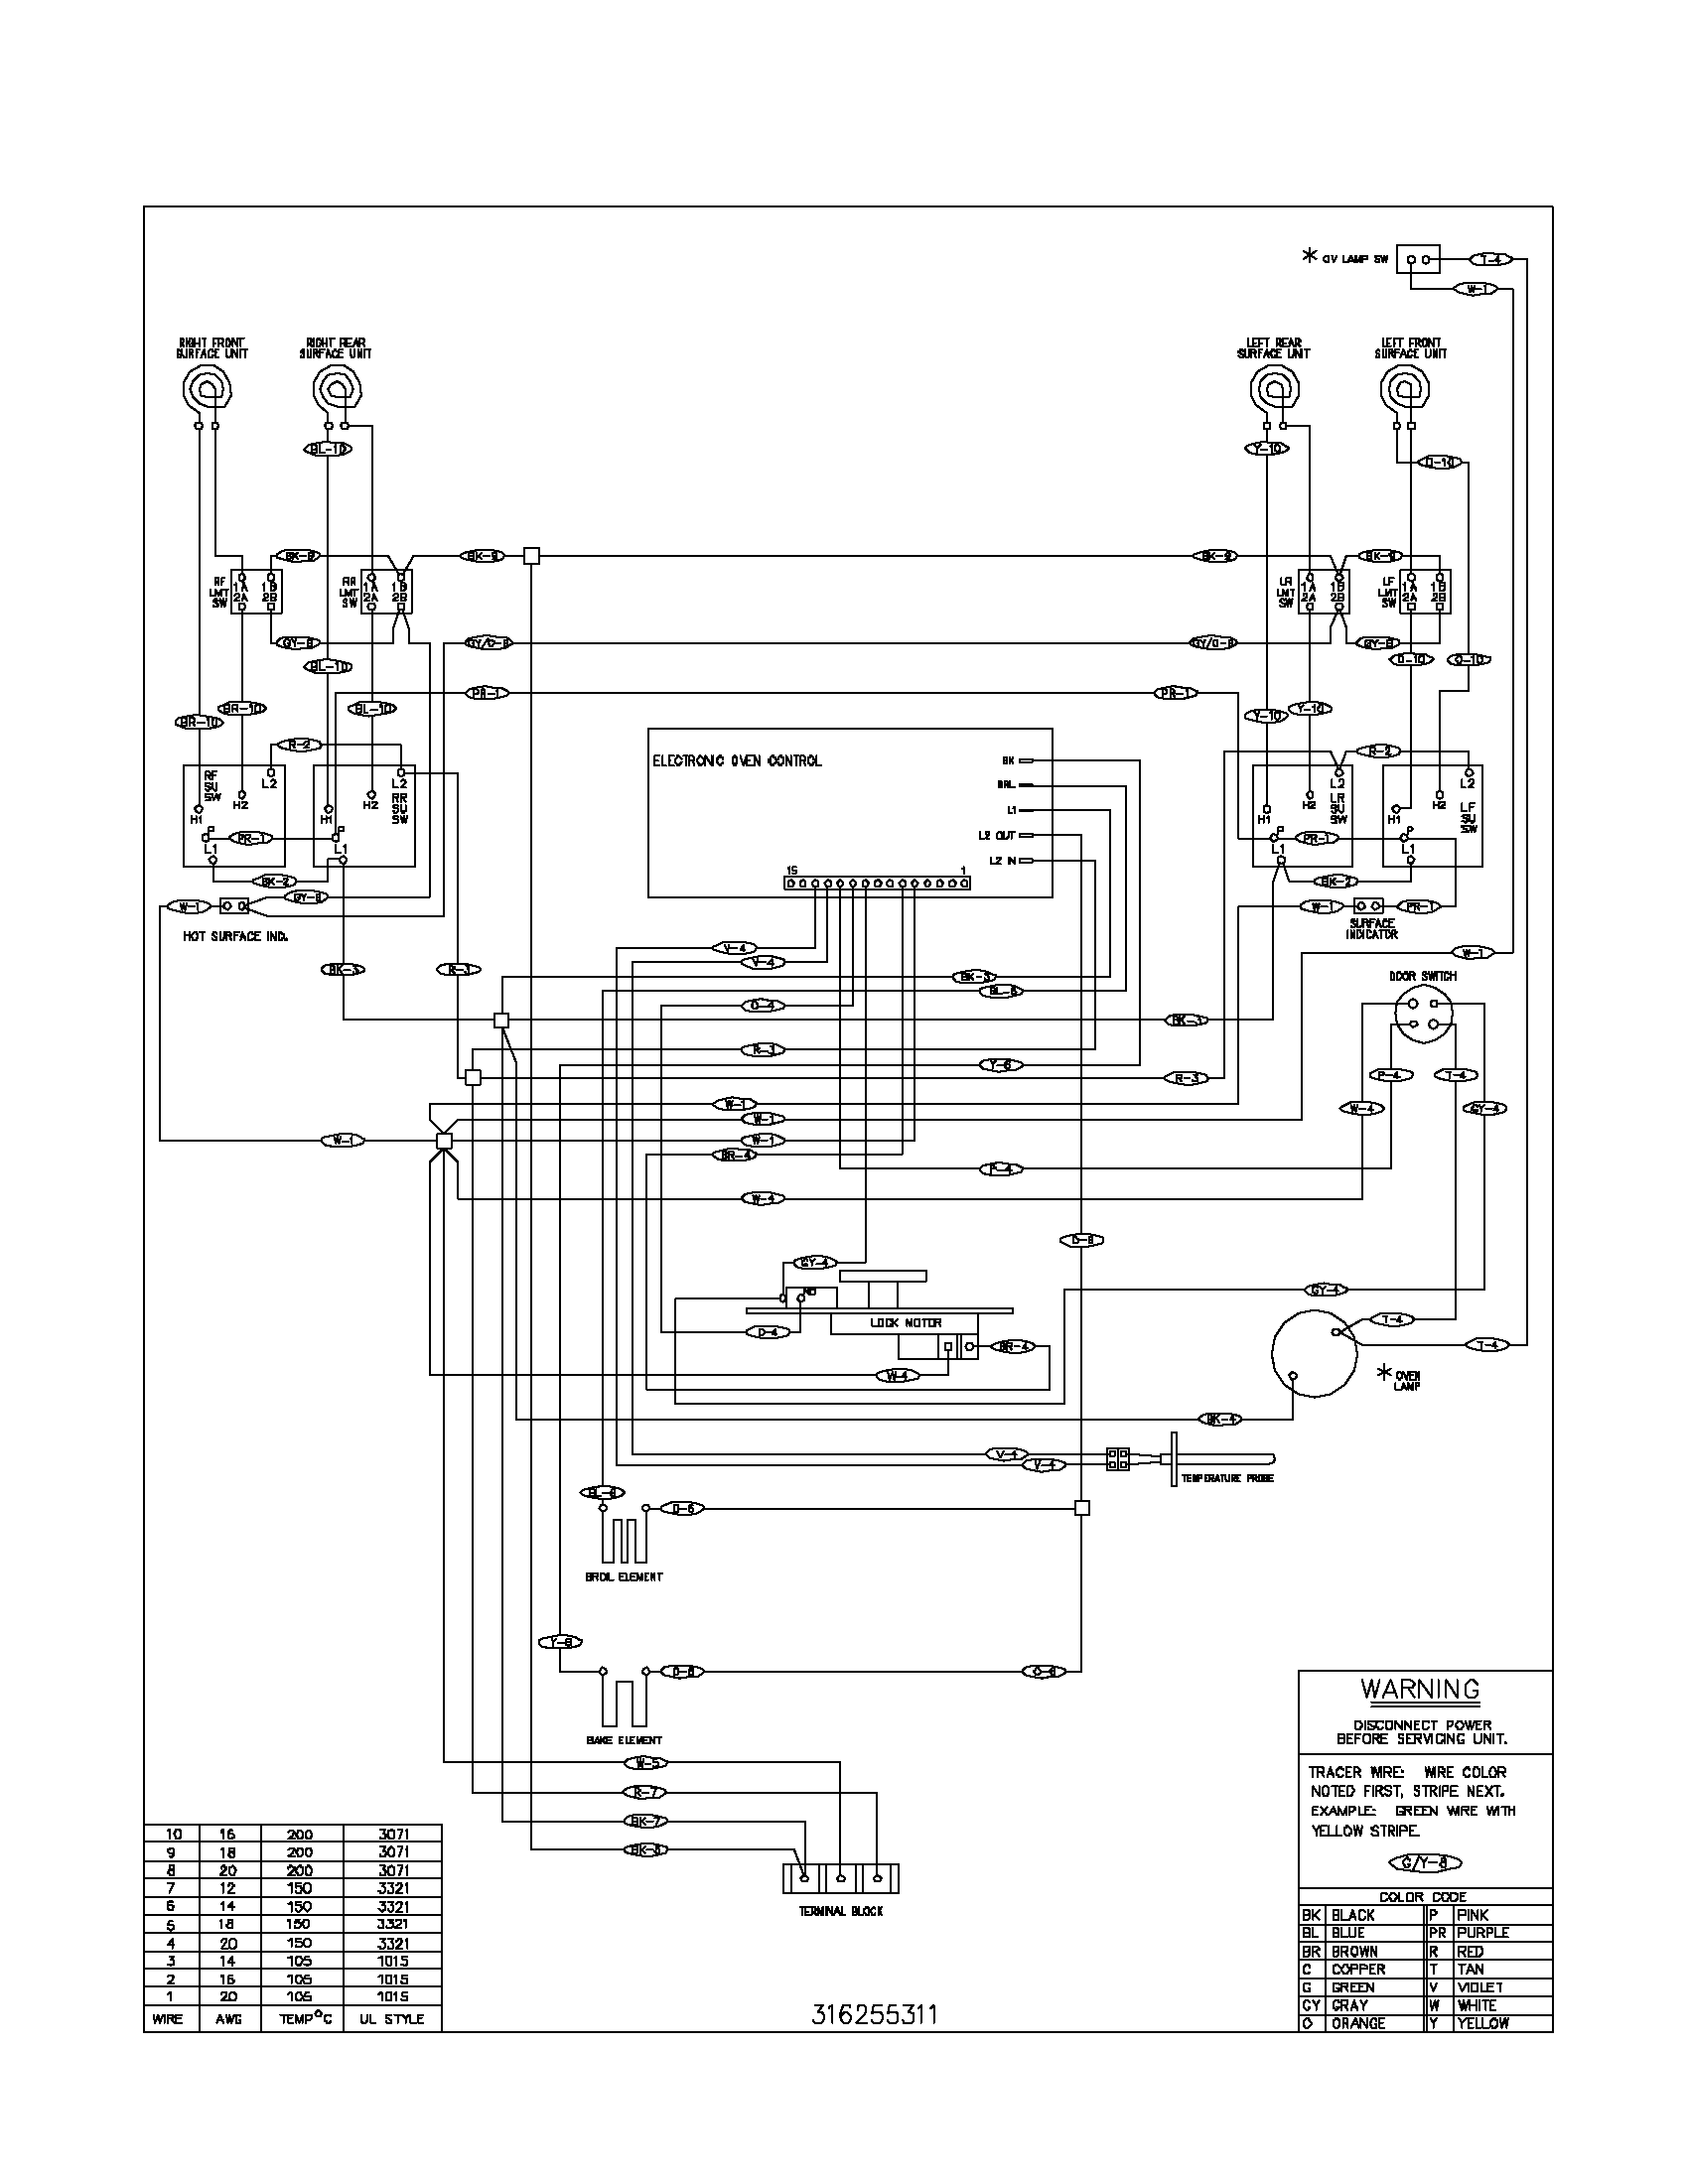 wiring electric range circuit